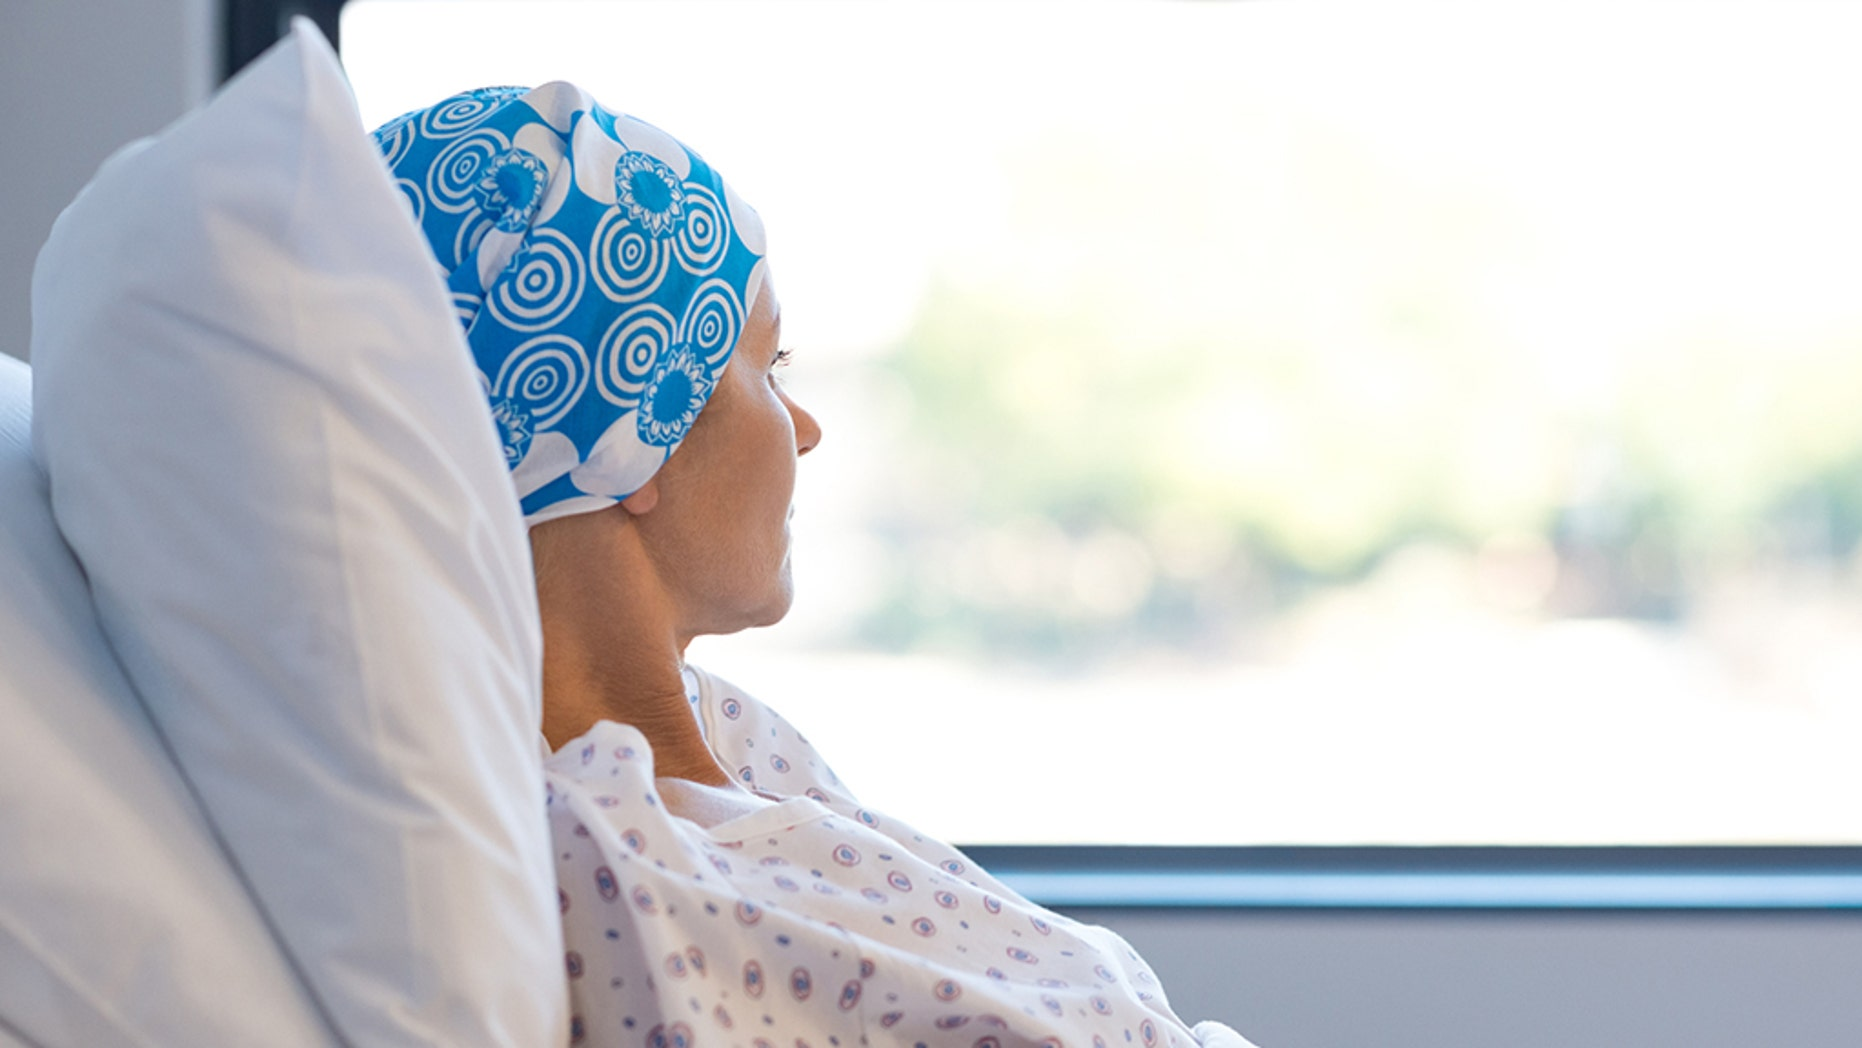 Ohio woman is cancer free following promising clinical trial, she claims